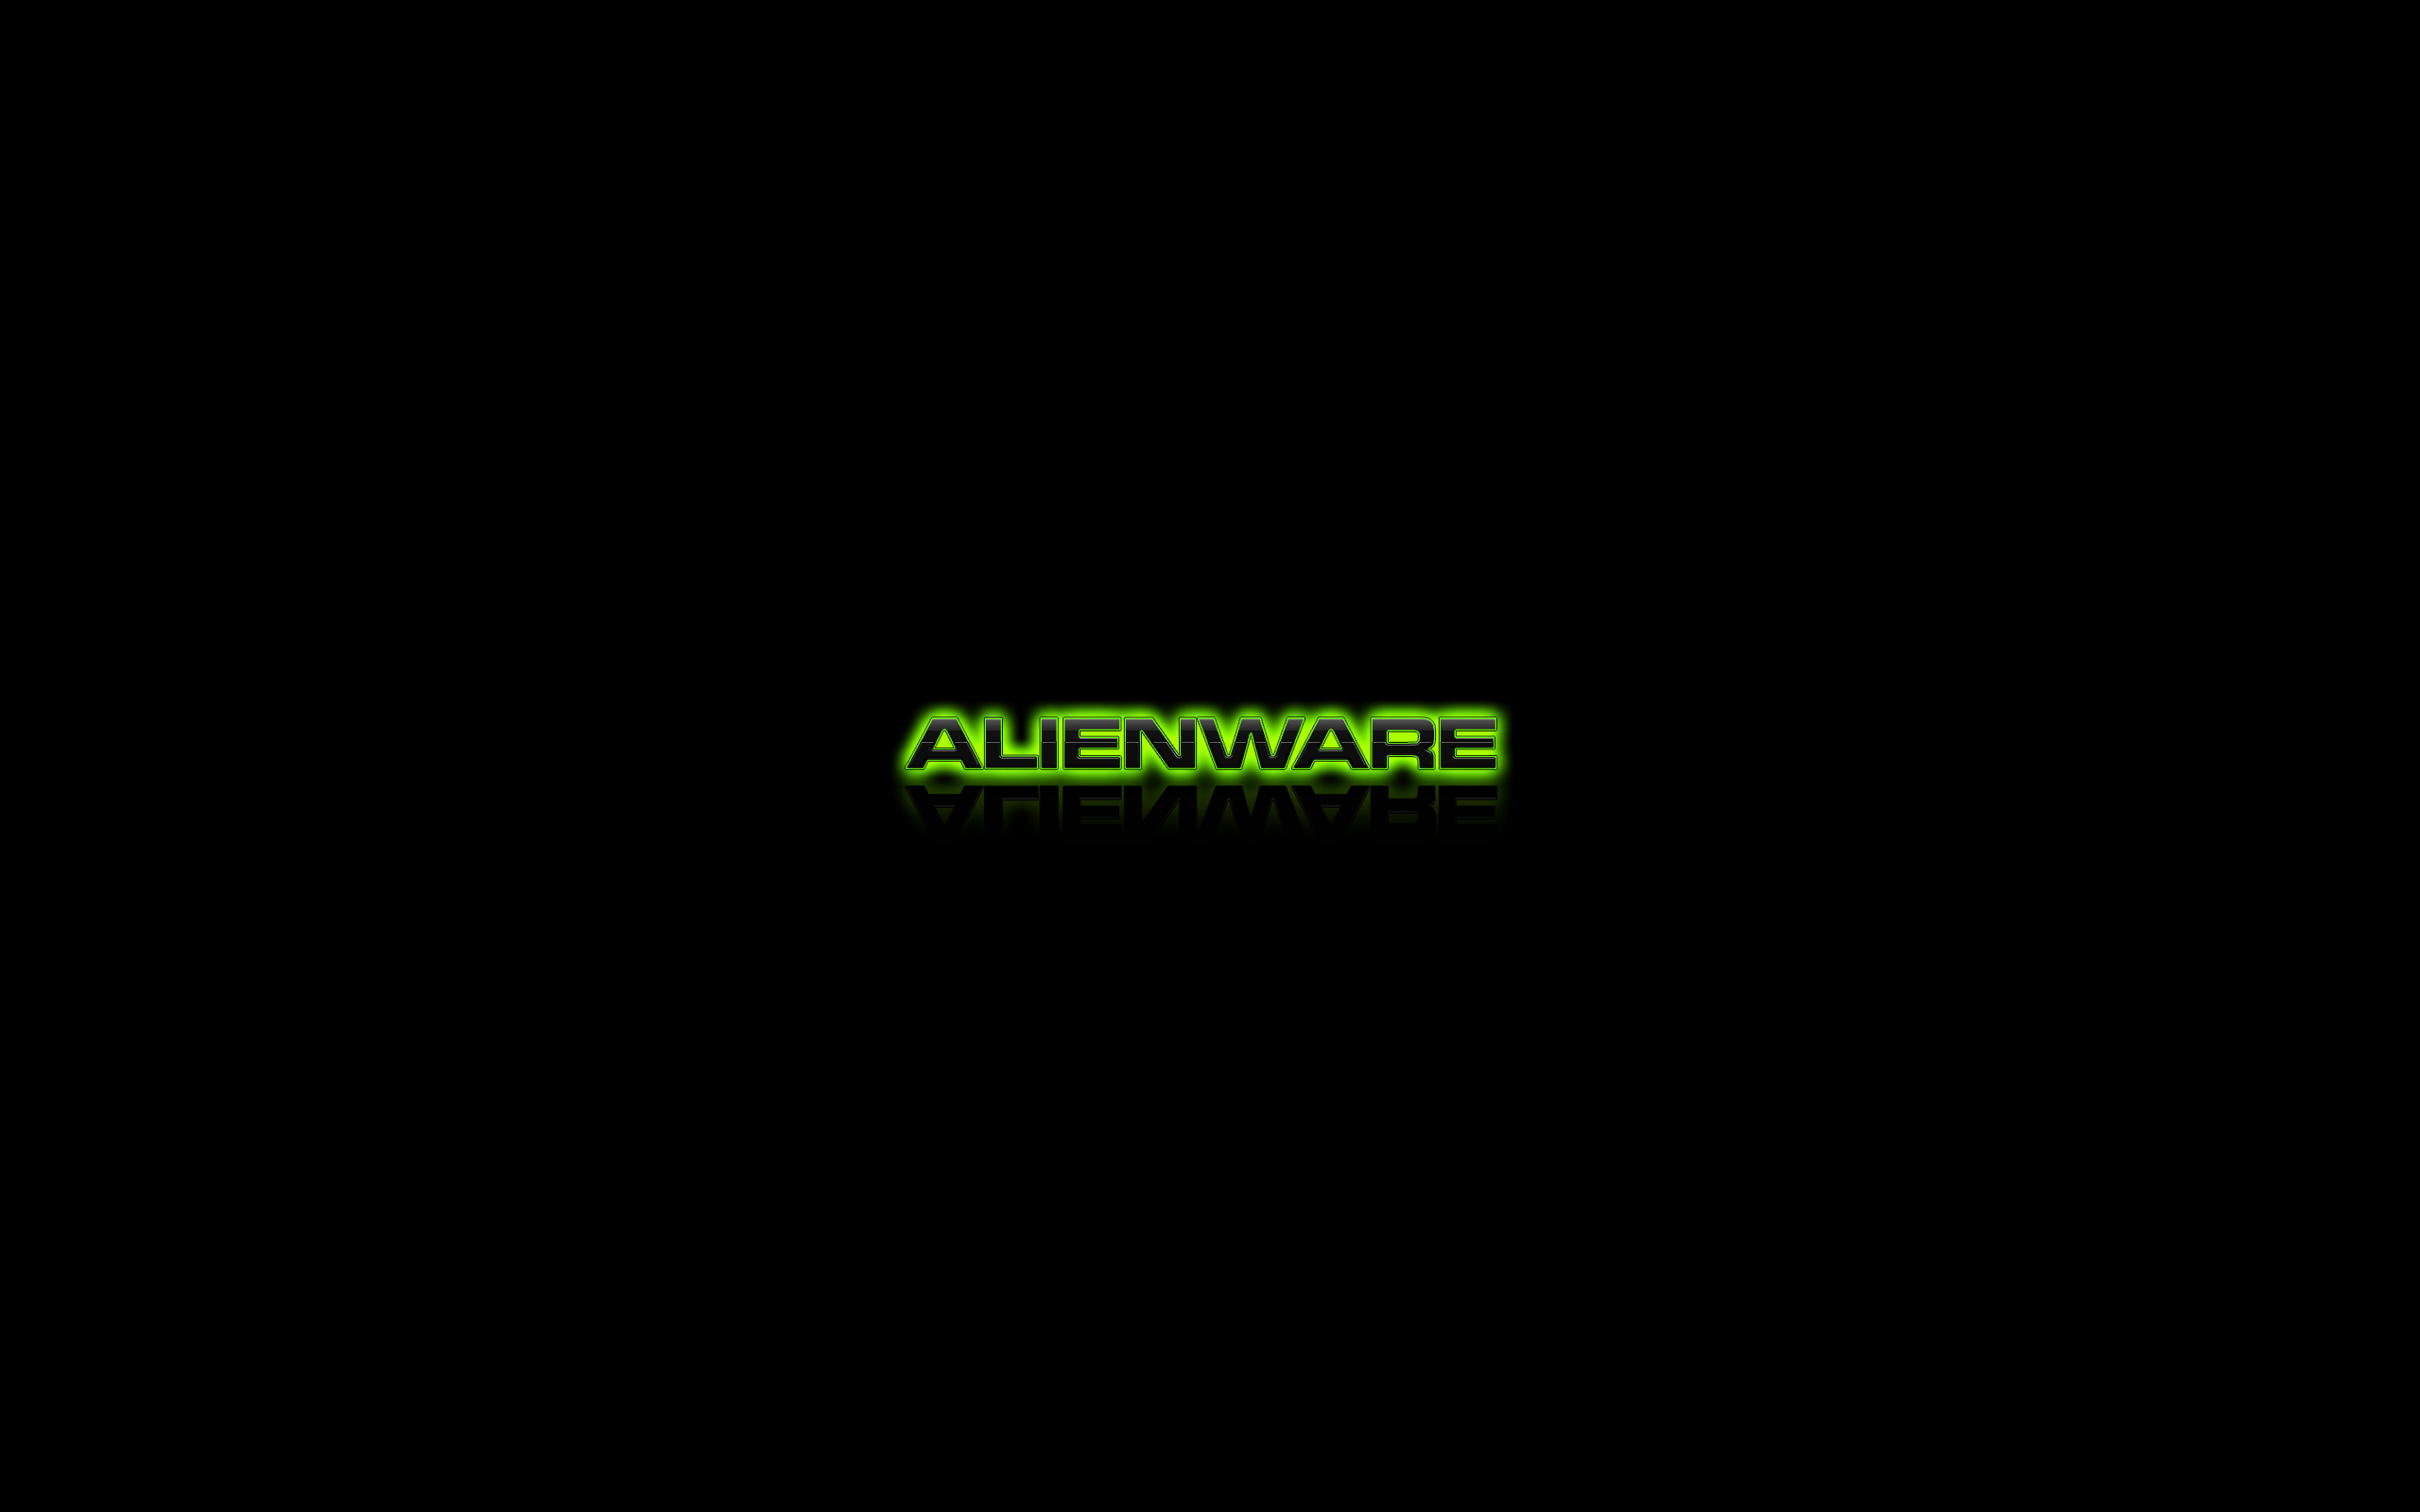 Alienware Green Logo by darkangelkrys 2560x1600